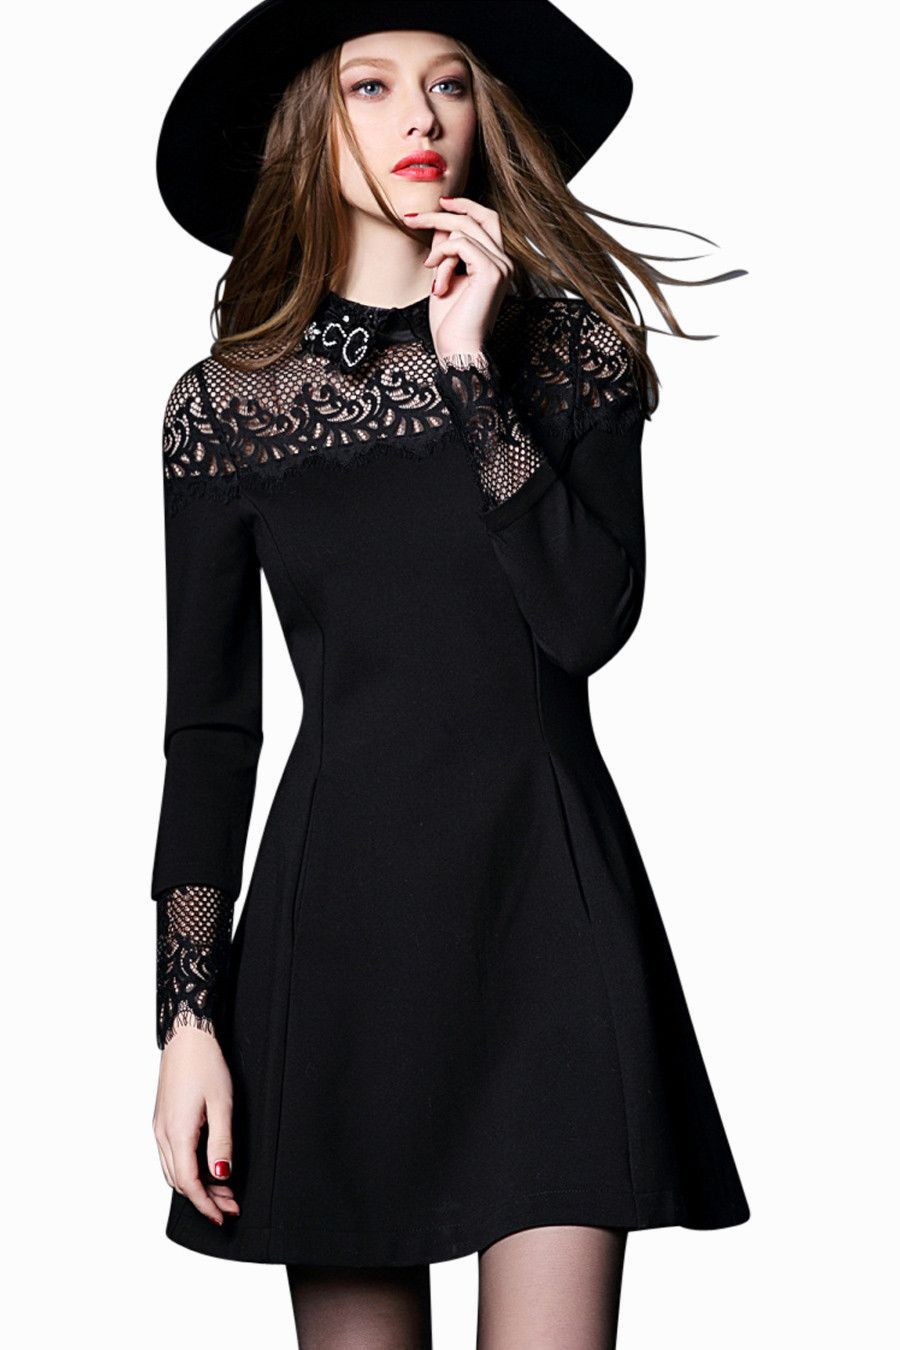 This item is shipped in 48 hours, included the weekends. This a-line dress is…